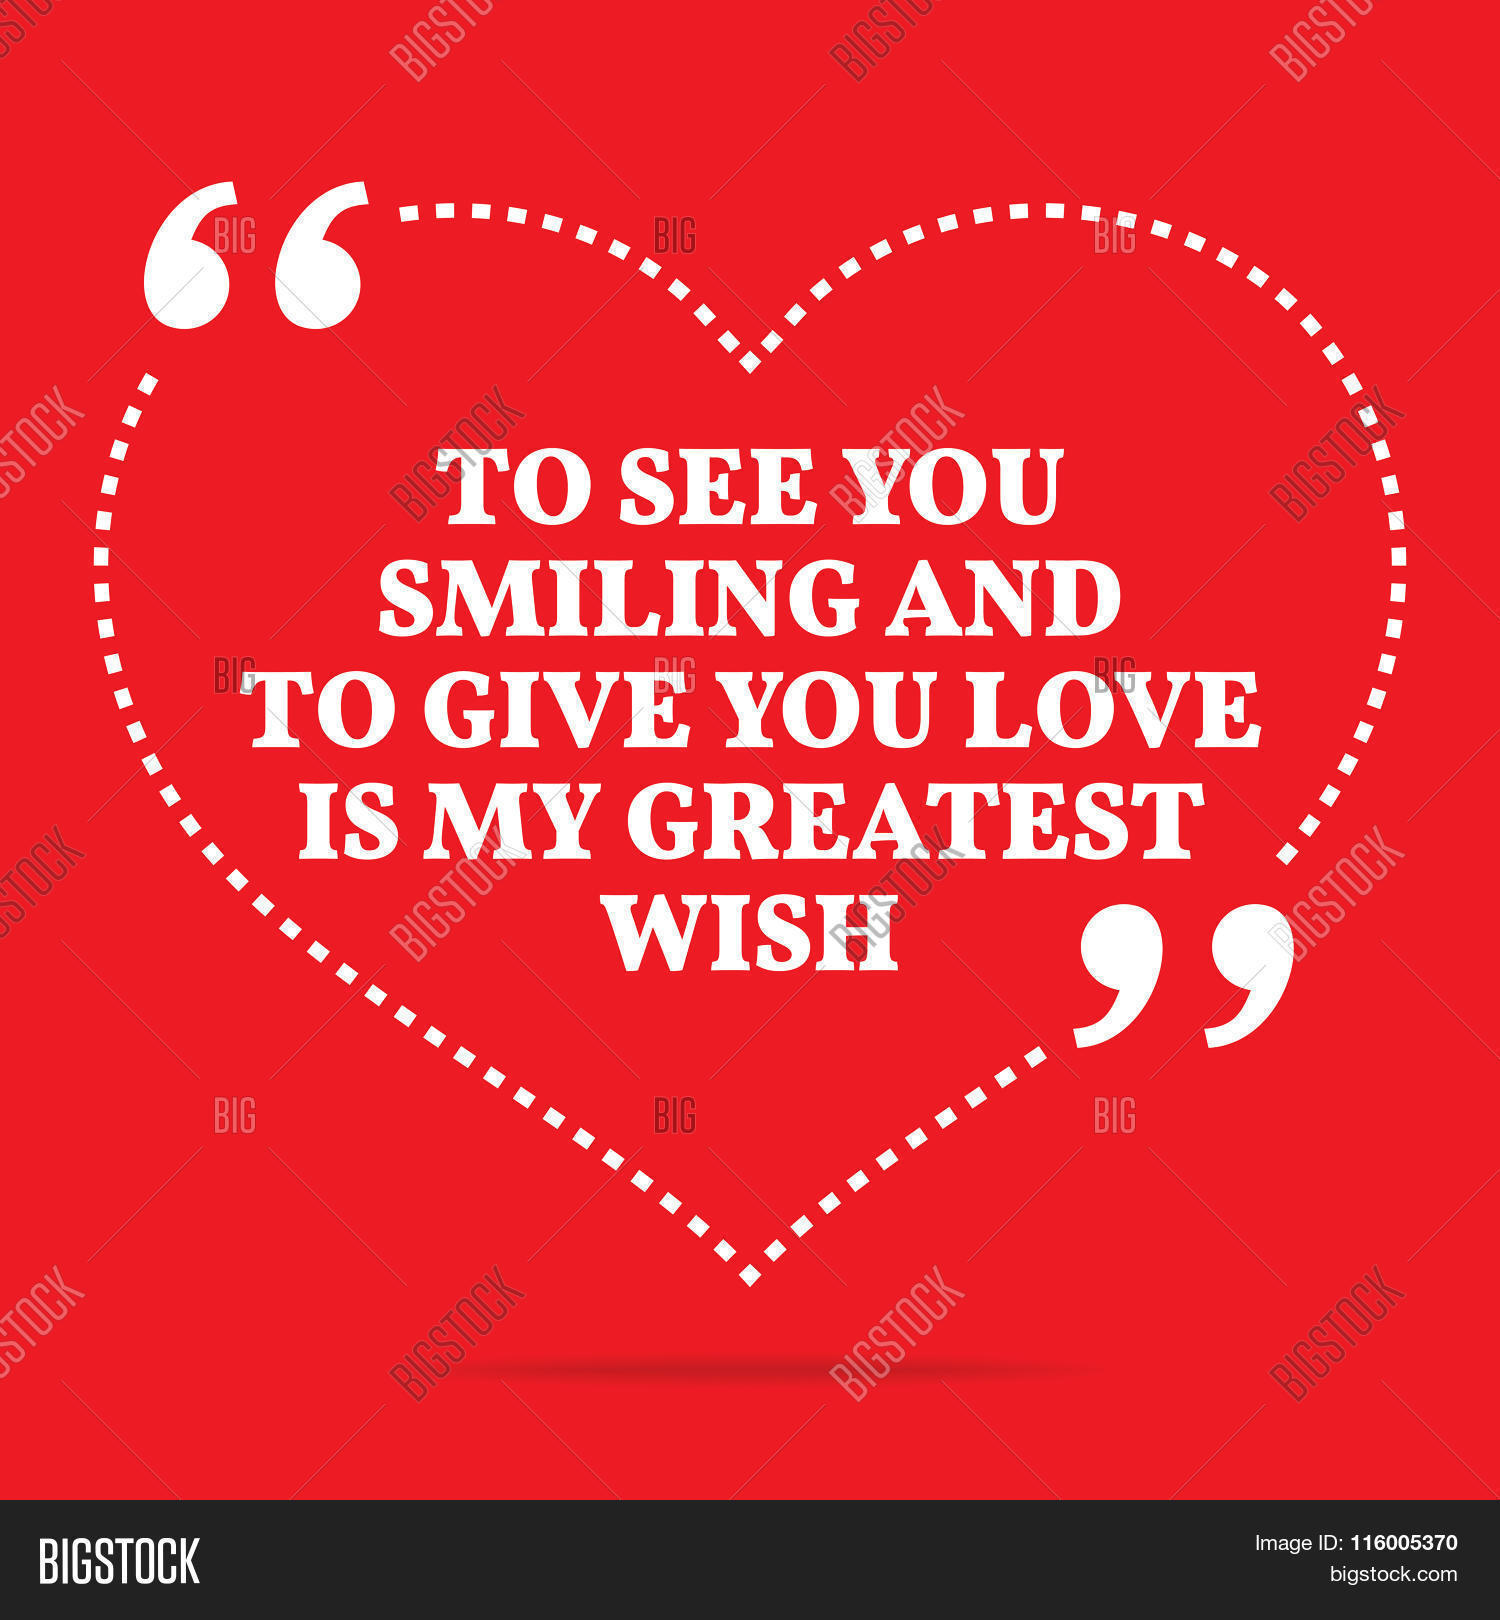 Greatest Love Quotes Inspirational Love Quotesee You Vector & Photo  Bigstock